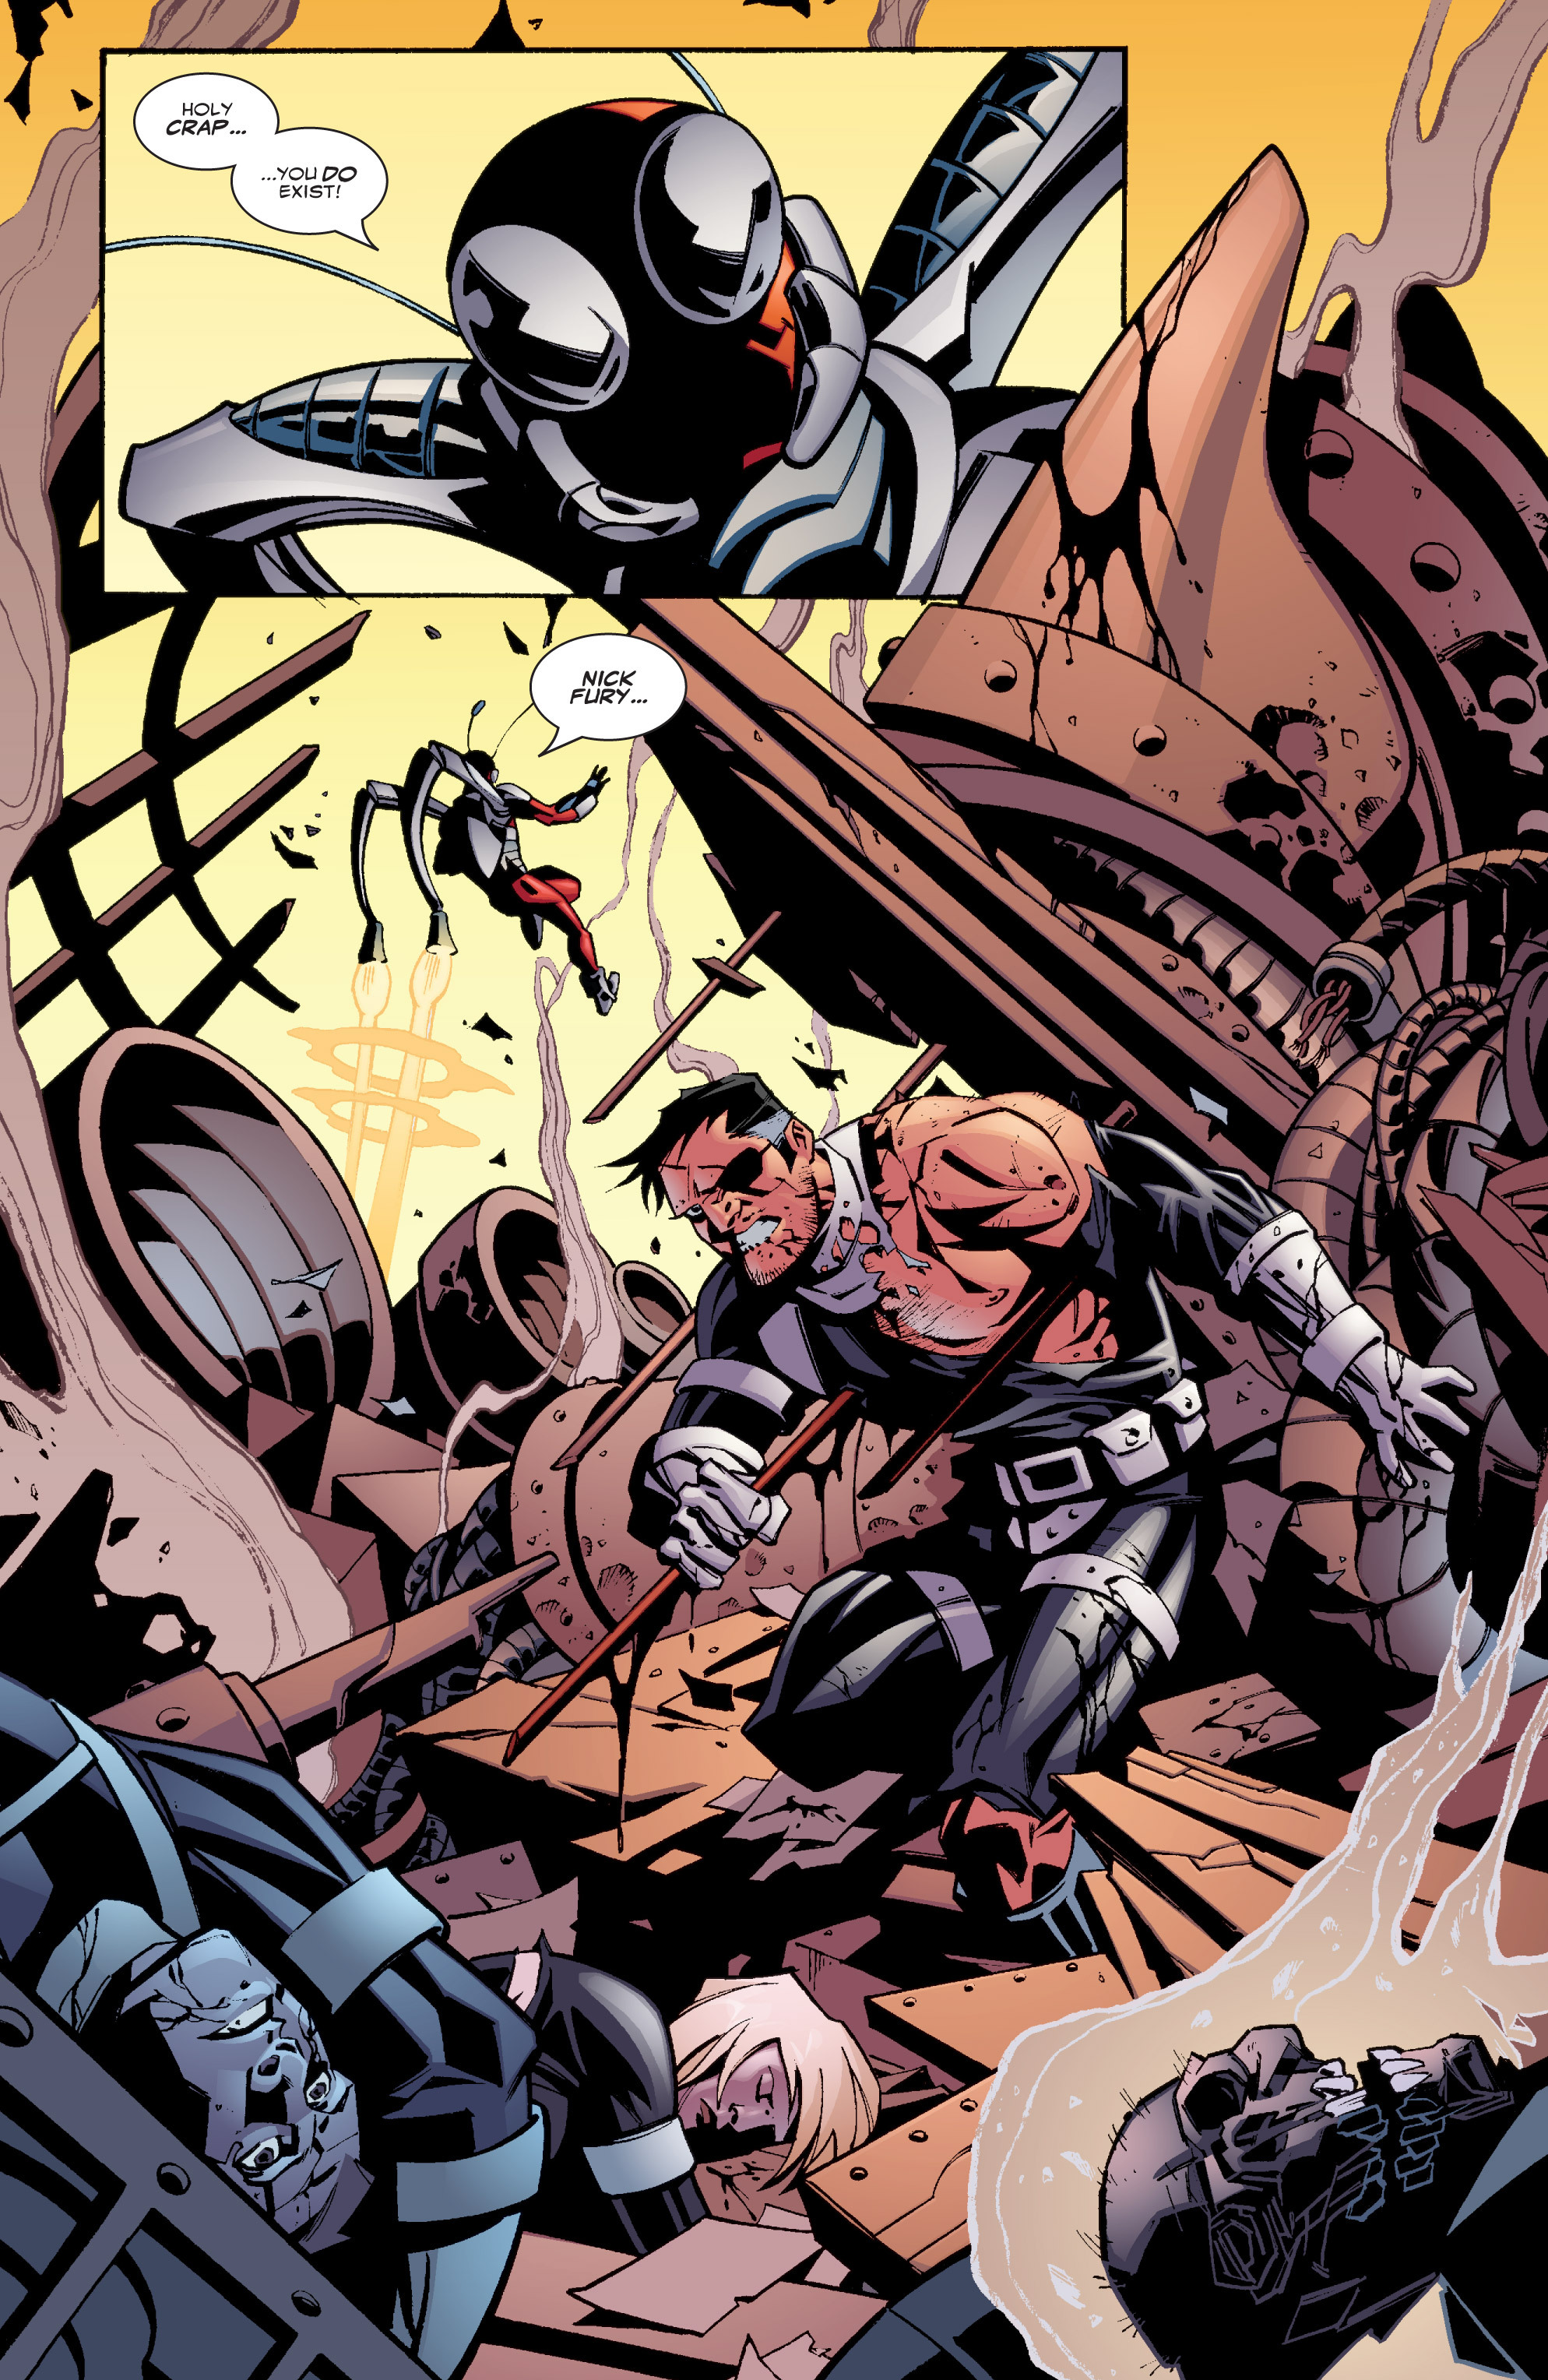 The Irredeemable Ant-Man Issue #2 #2 - English 19